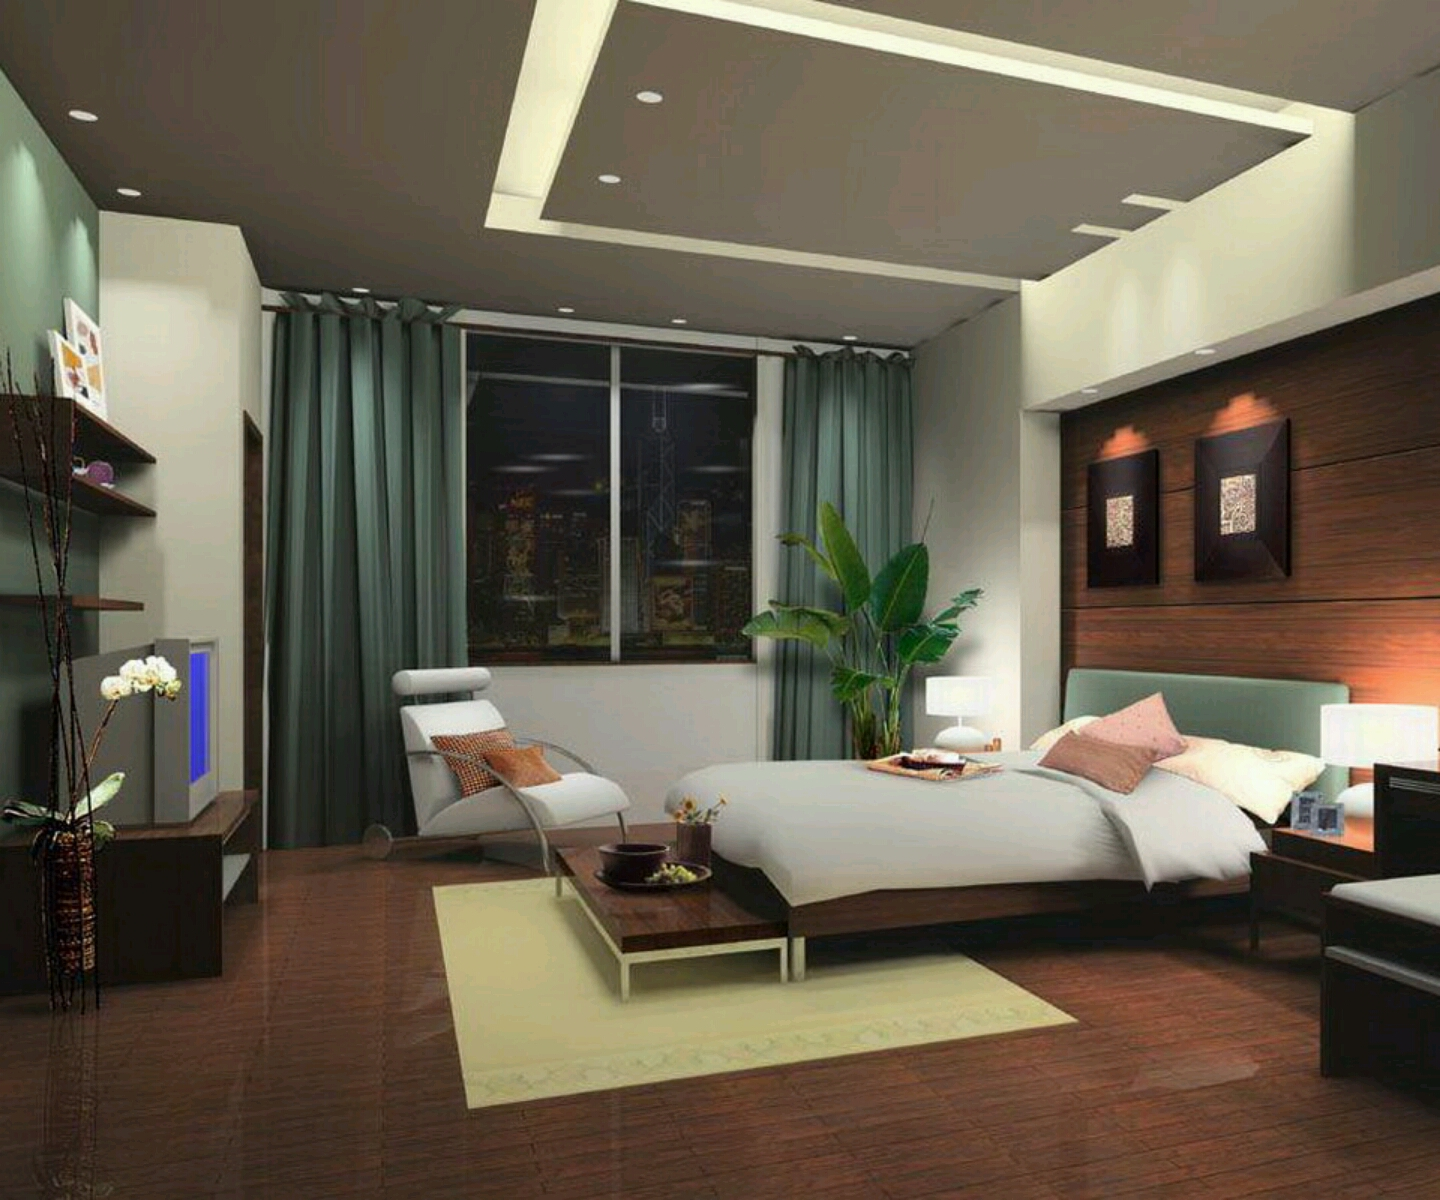 New home designs latest modern bedrooms designs best ideas for Latest home decor ideas